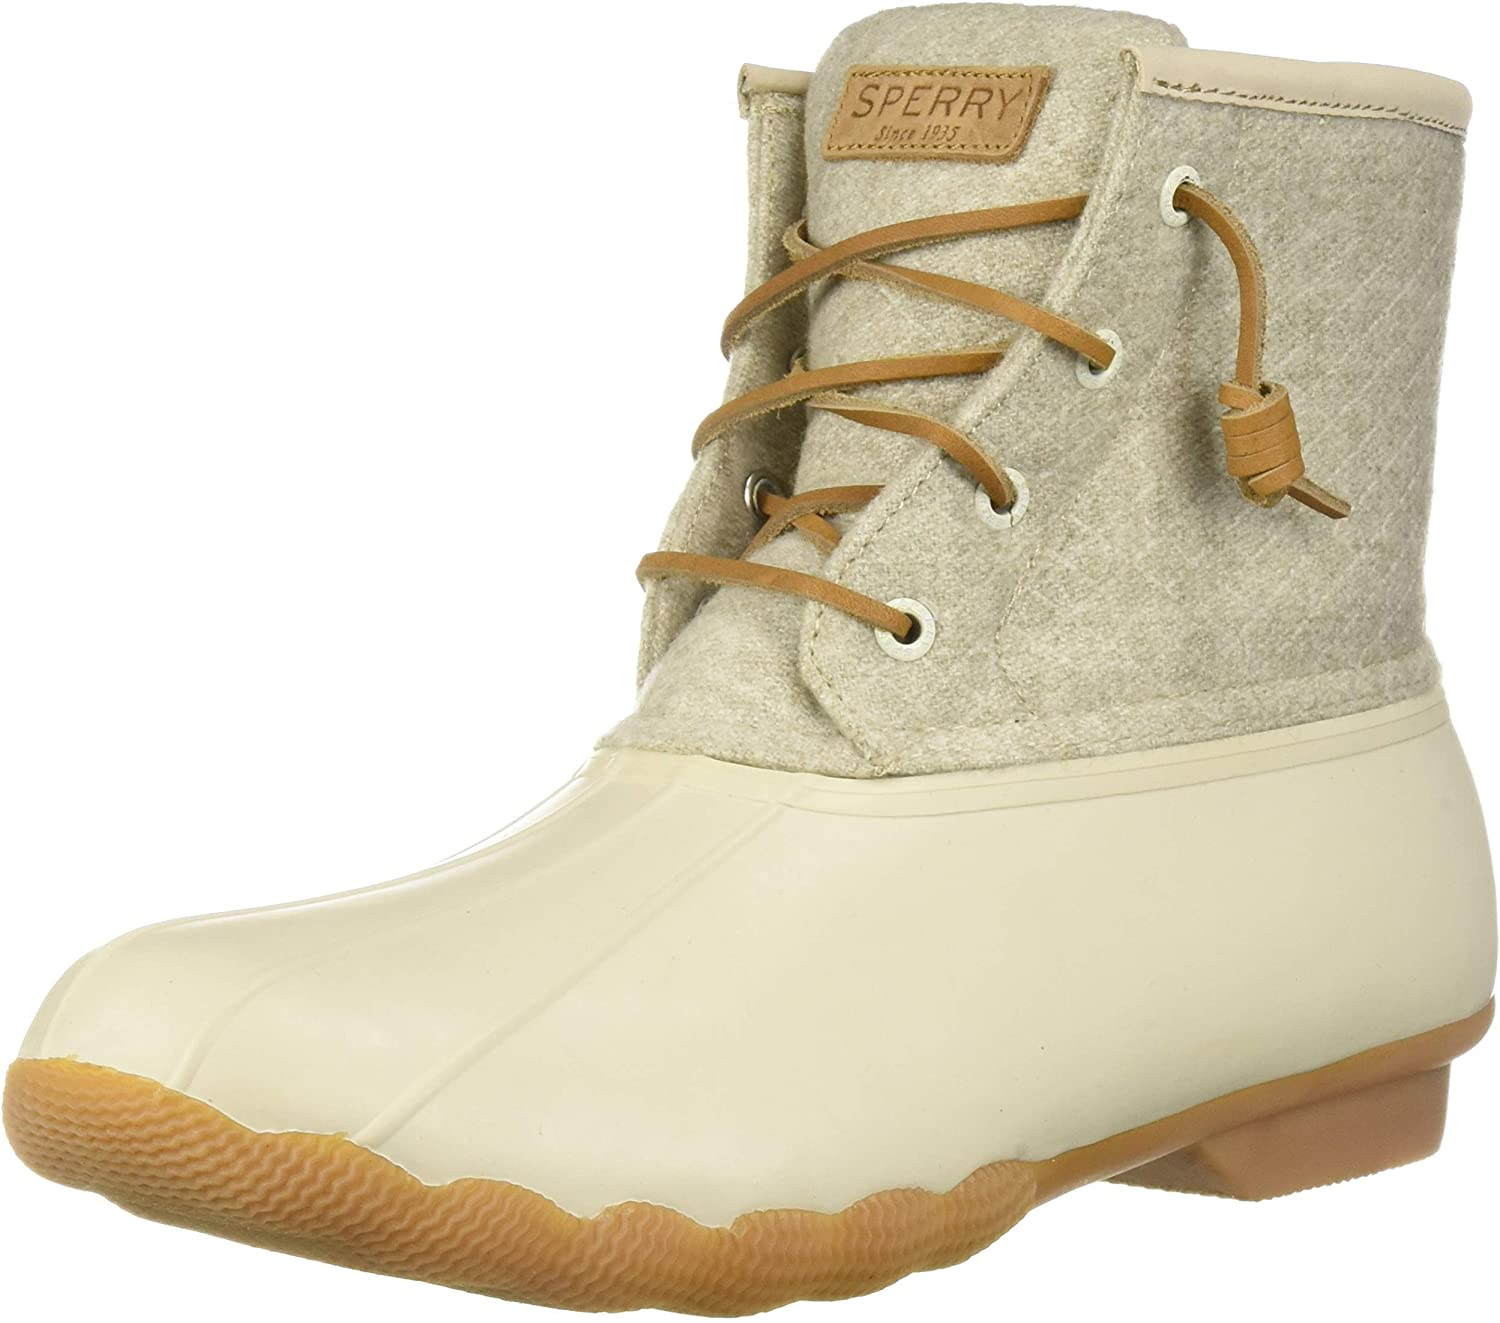 Sperry Women's Saltwater Emboss Wool Rain Boot